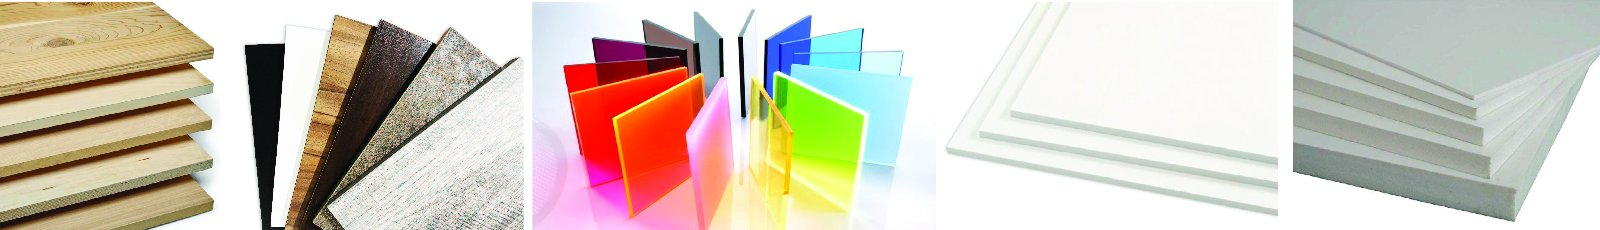 Point of Sales Materials (POSM) Production and Consultation